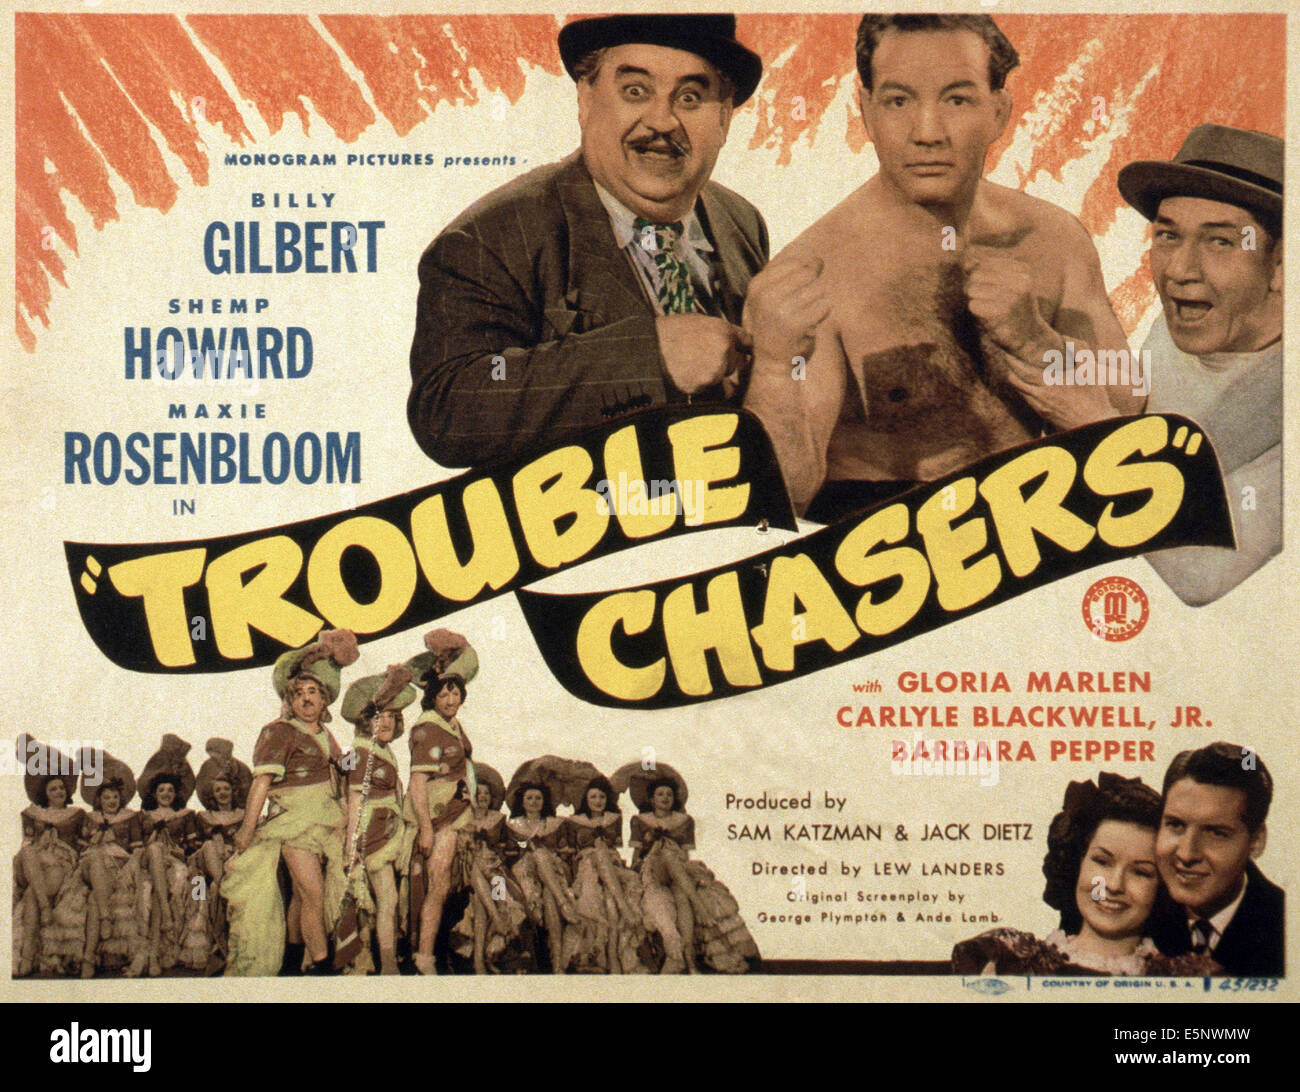 TROUBLE CHASERS, US lobbycard, top, from left: Billy Gilbert, Max Rosenbloom, Shemp Howard; bottom, second right: Stock Photo